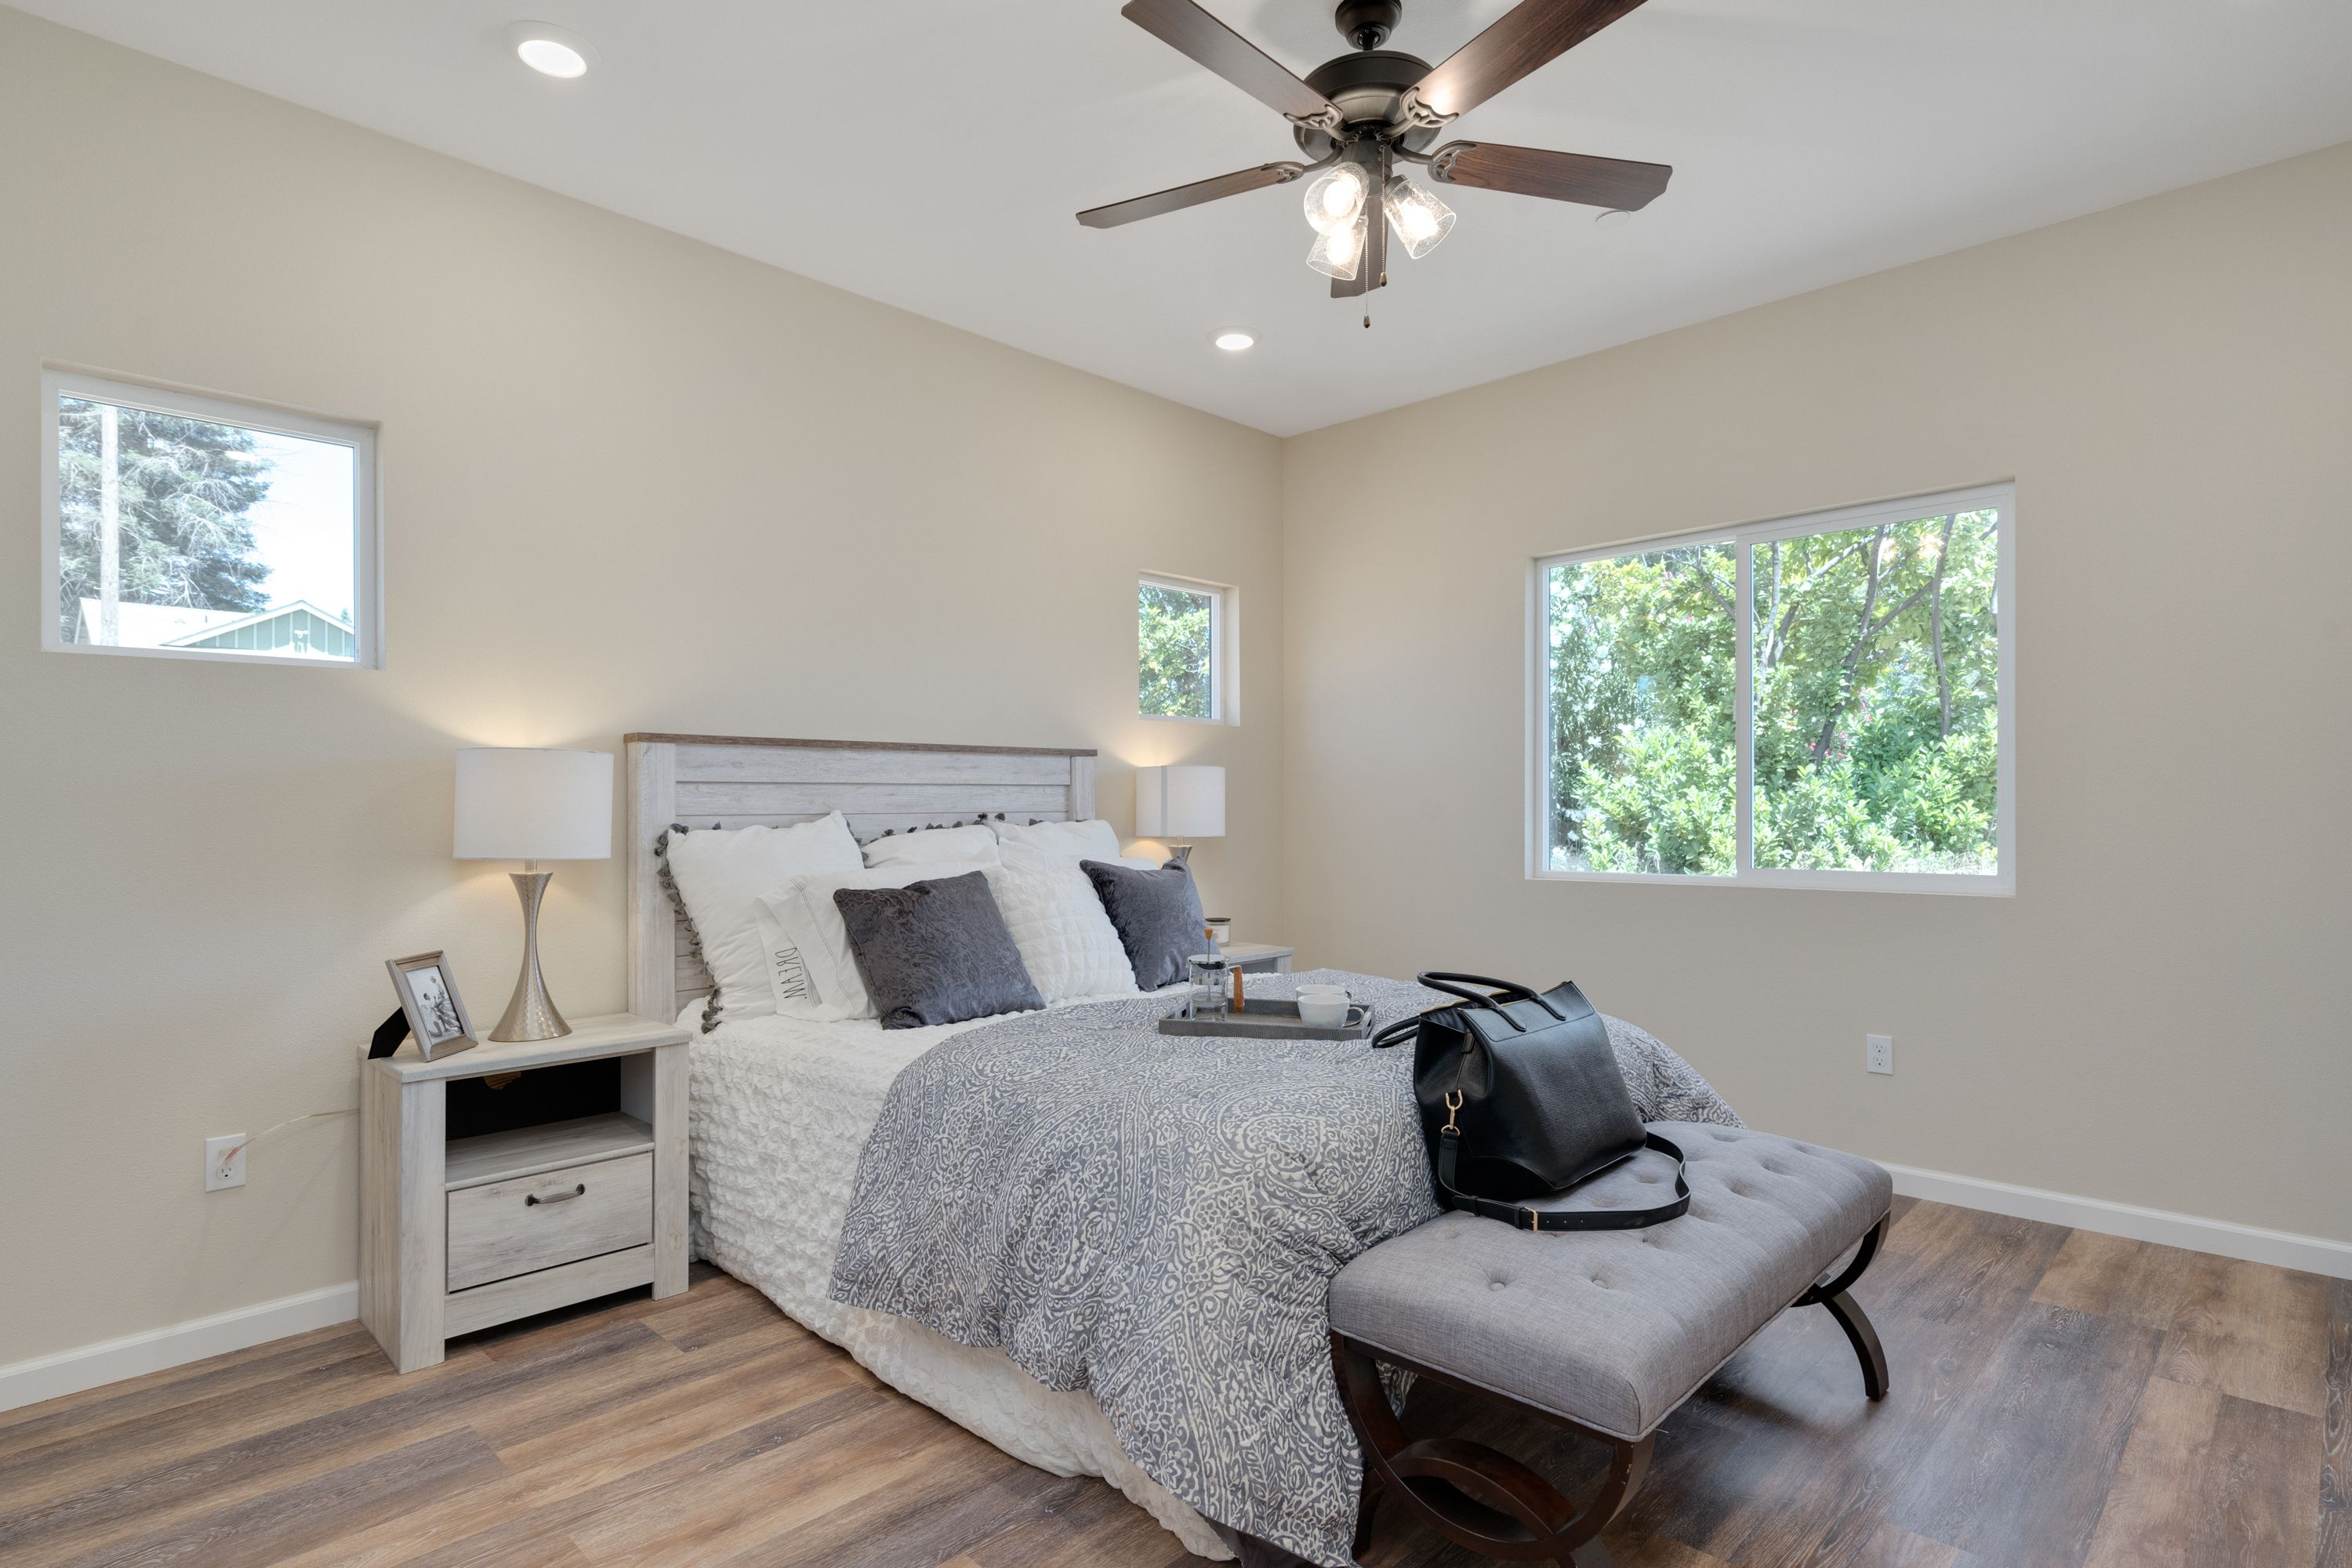 Bedroom featured in the 503 Crestwood Dr By Silvermark Luxury Homes in Chico, CA